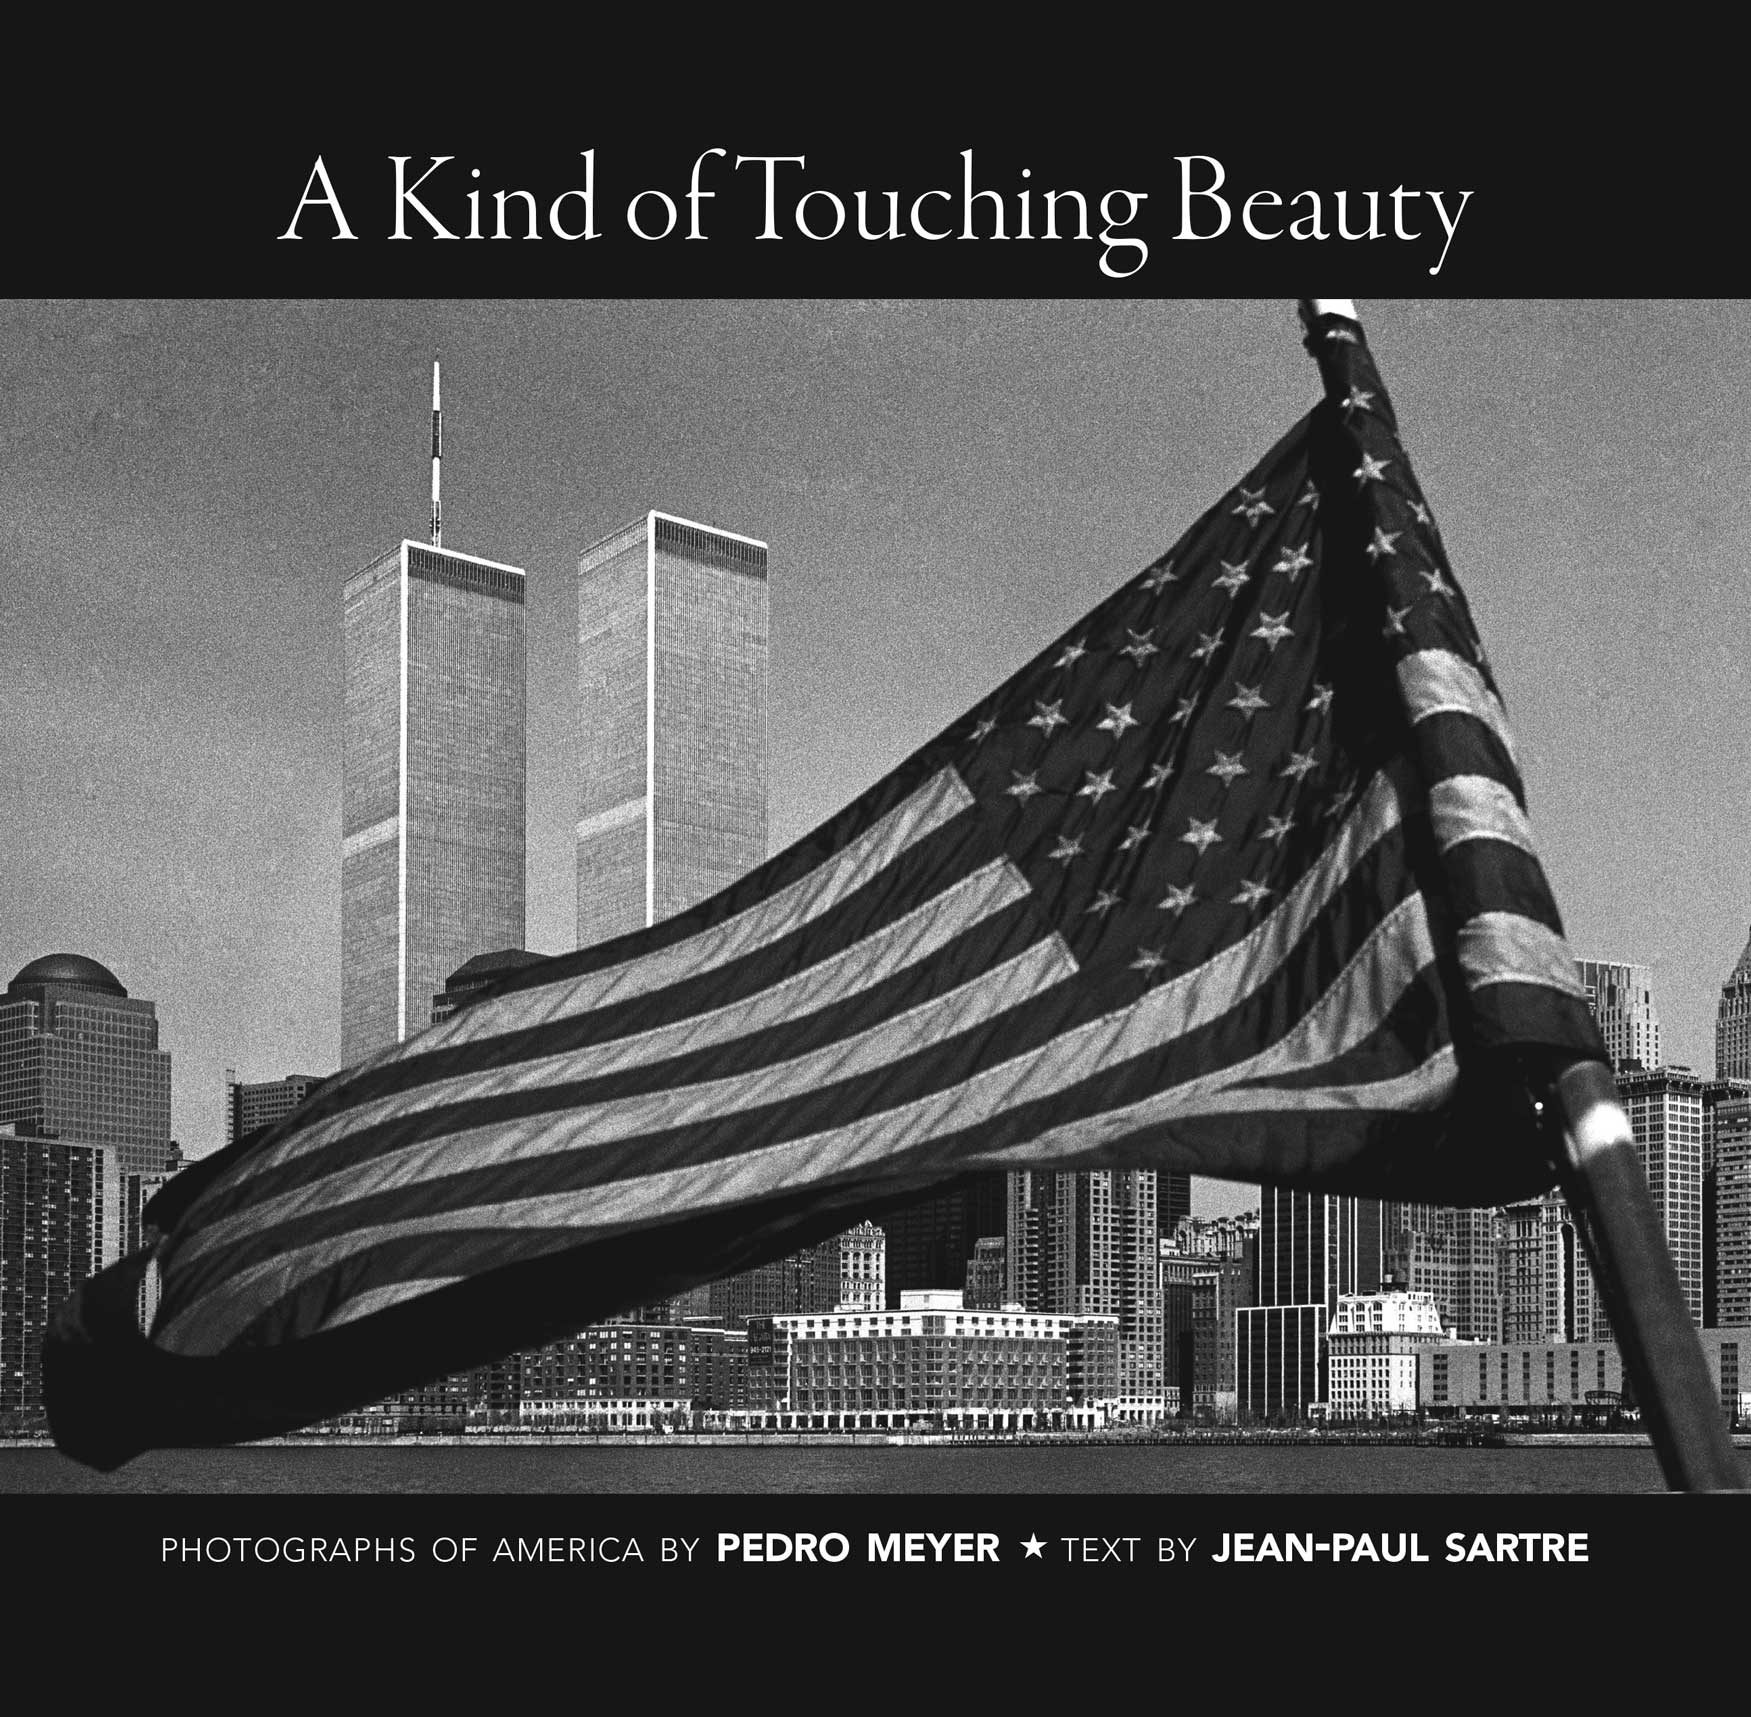 A KIND OF TOUCHING BEAUTY : Photographs of America by Pedro Meyer Text by Jean-Paul Sartre | Seagull Books